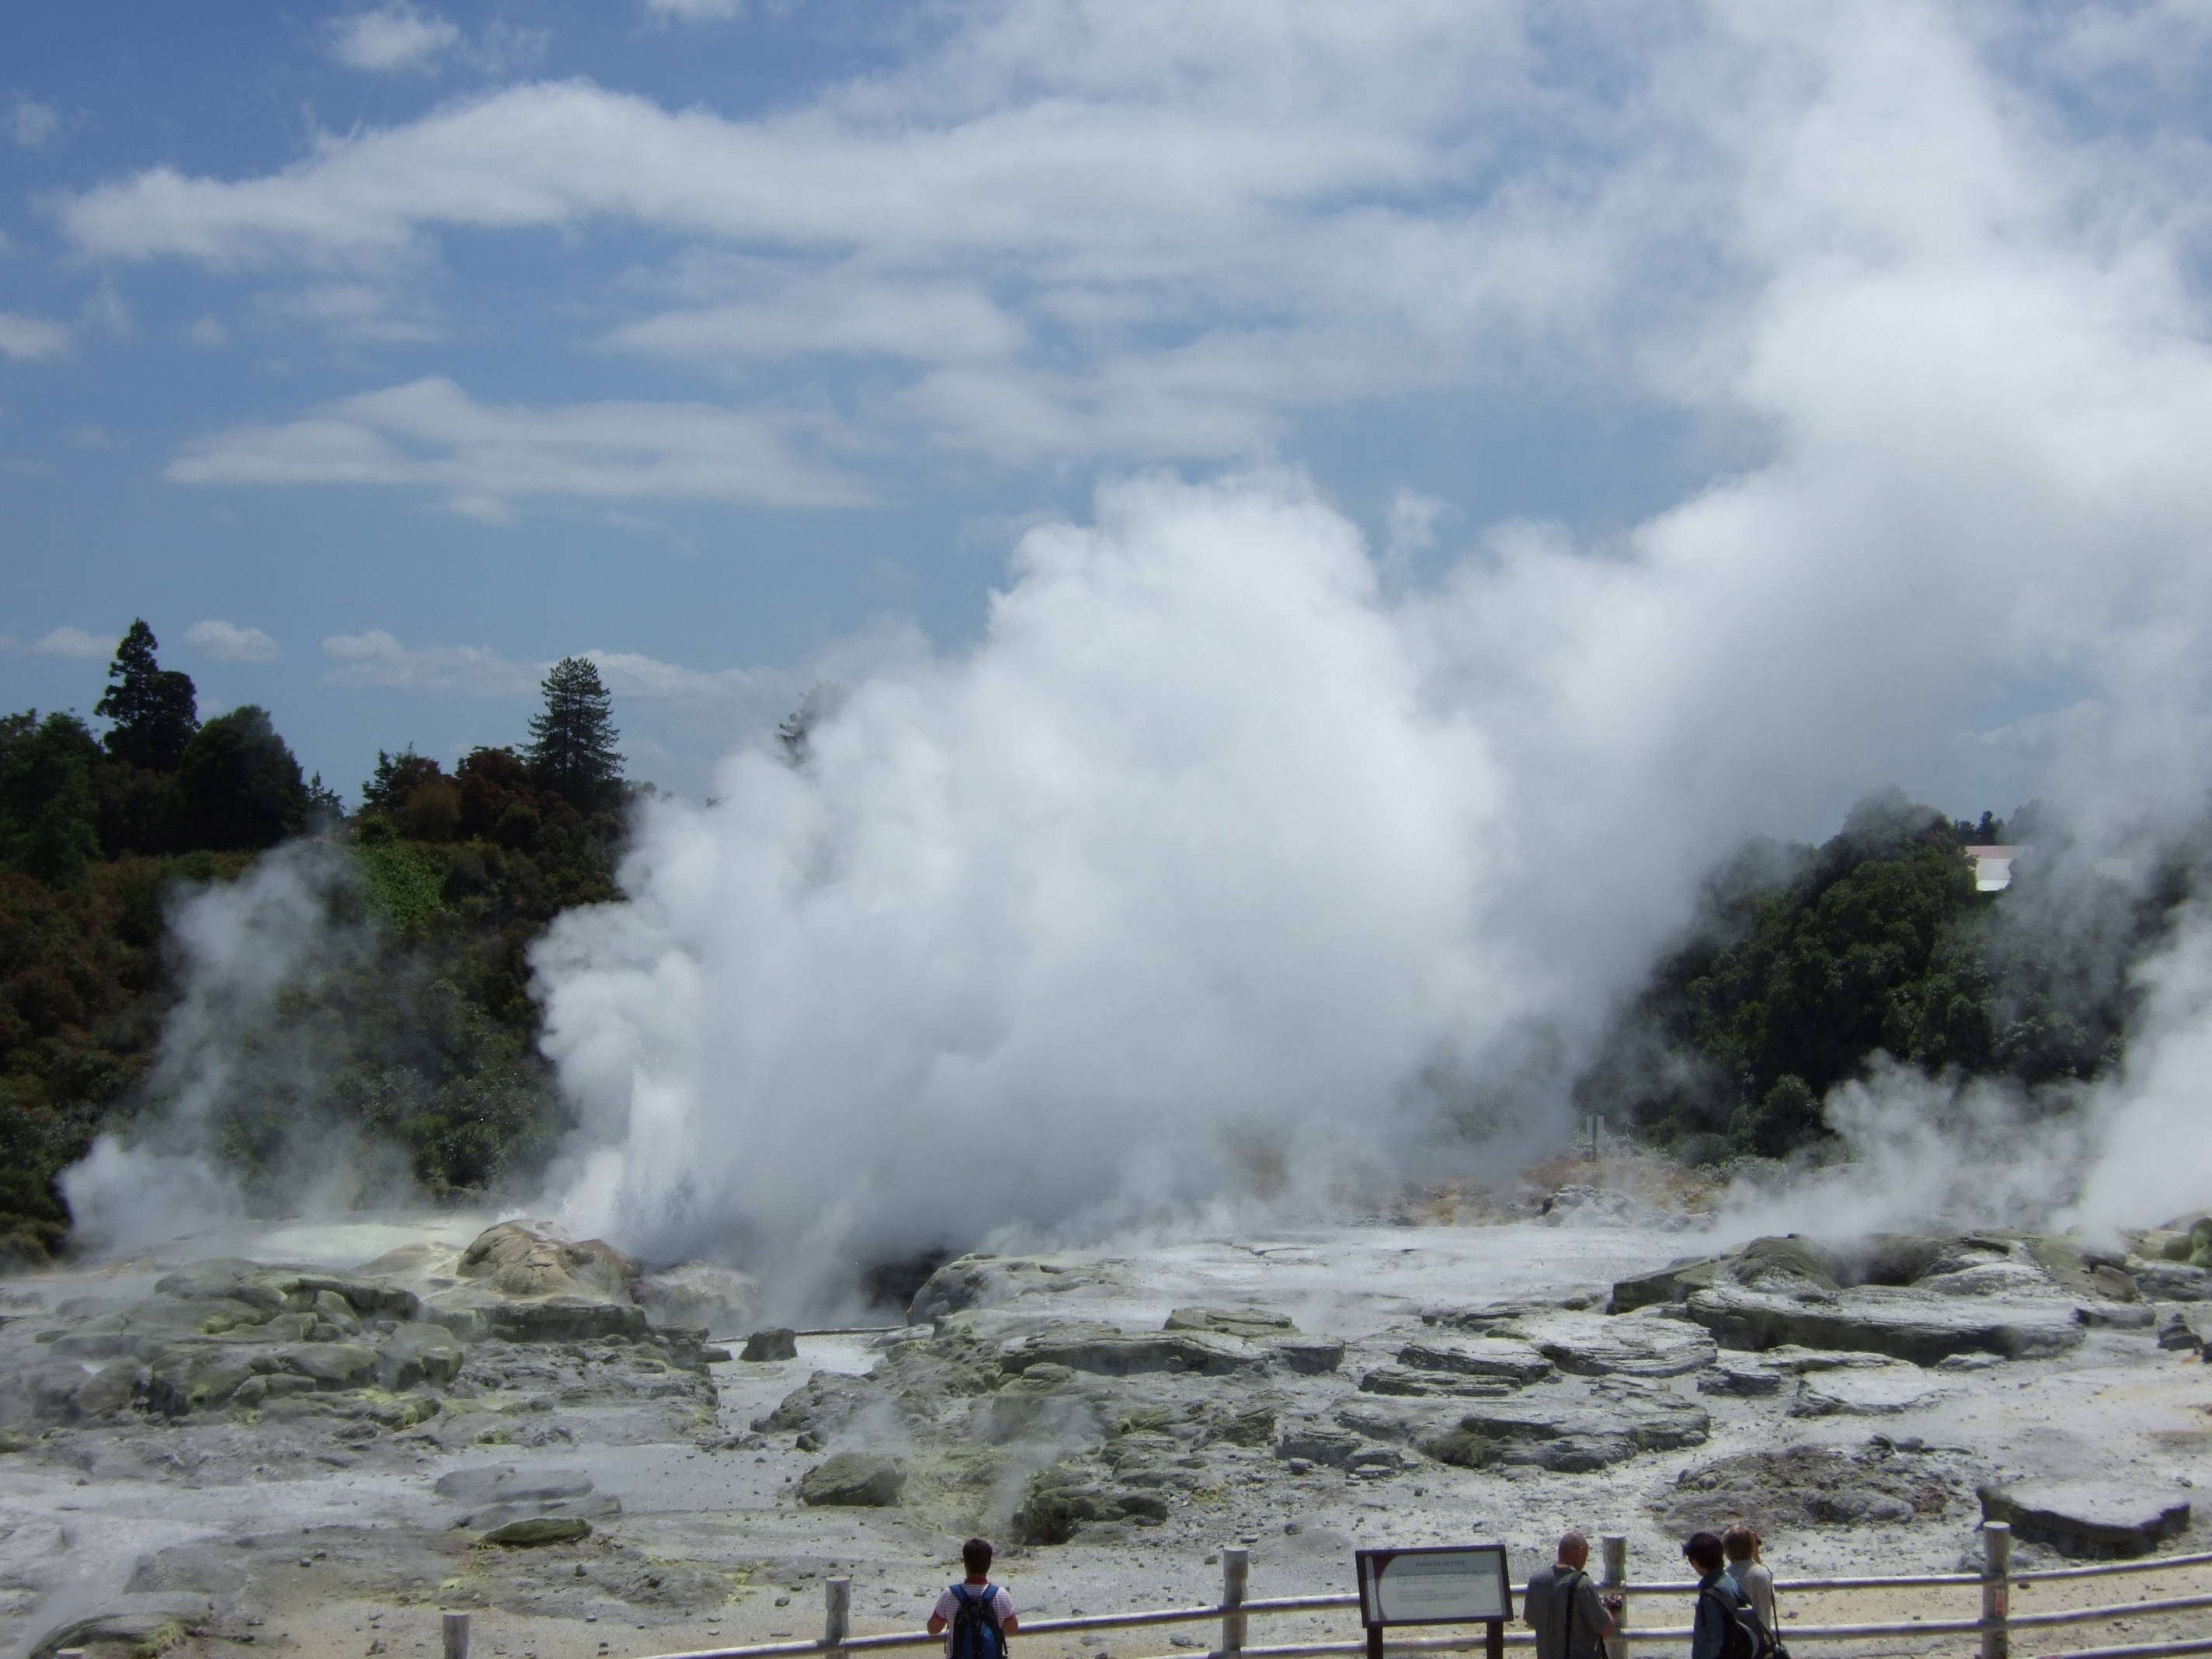 Te Apau geothermal area in Rotorua New Zealand has many geysers which erupt regularly throughout the day. These eruptions can last for up to half an hour and rise to a height of up to ten metres. Maori tribes who lived in the are would use the hot water pool to cook their food in.